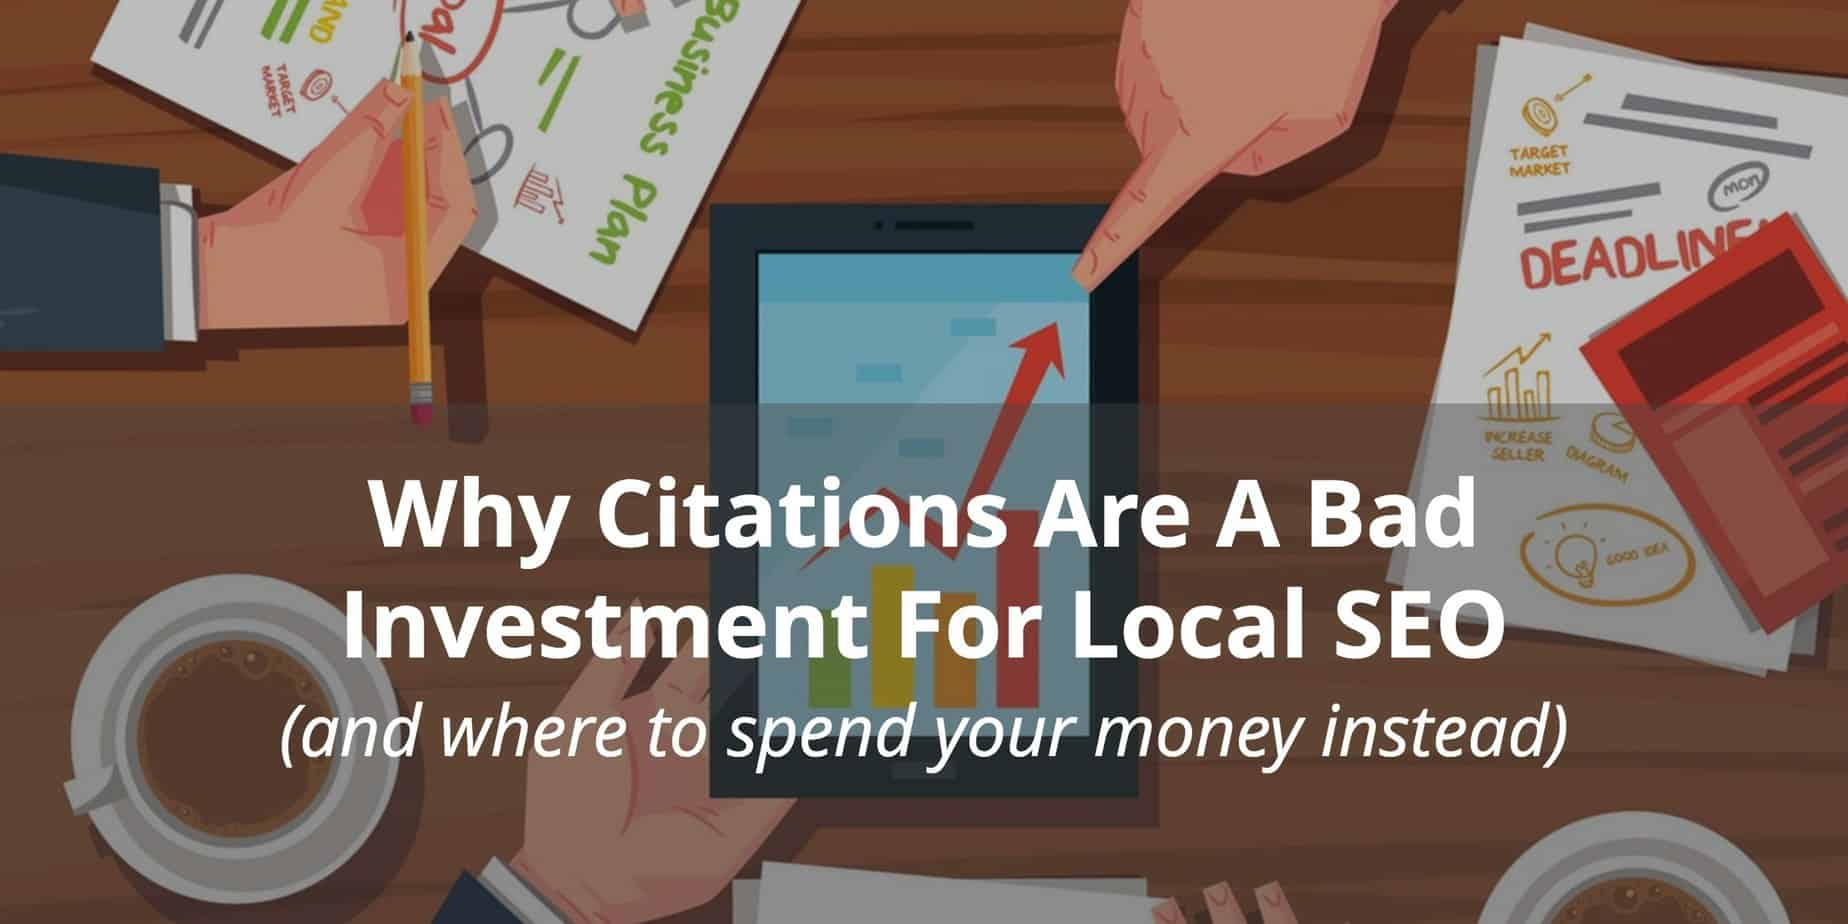 Citations Local SEO